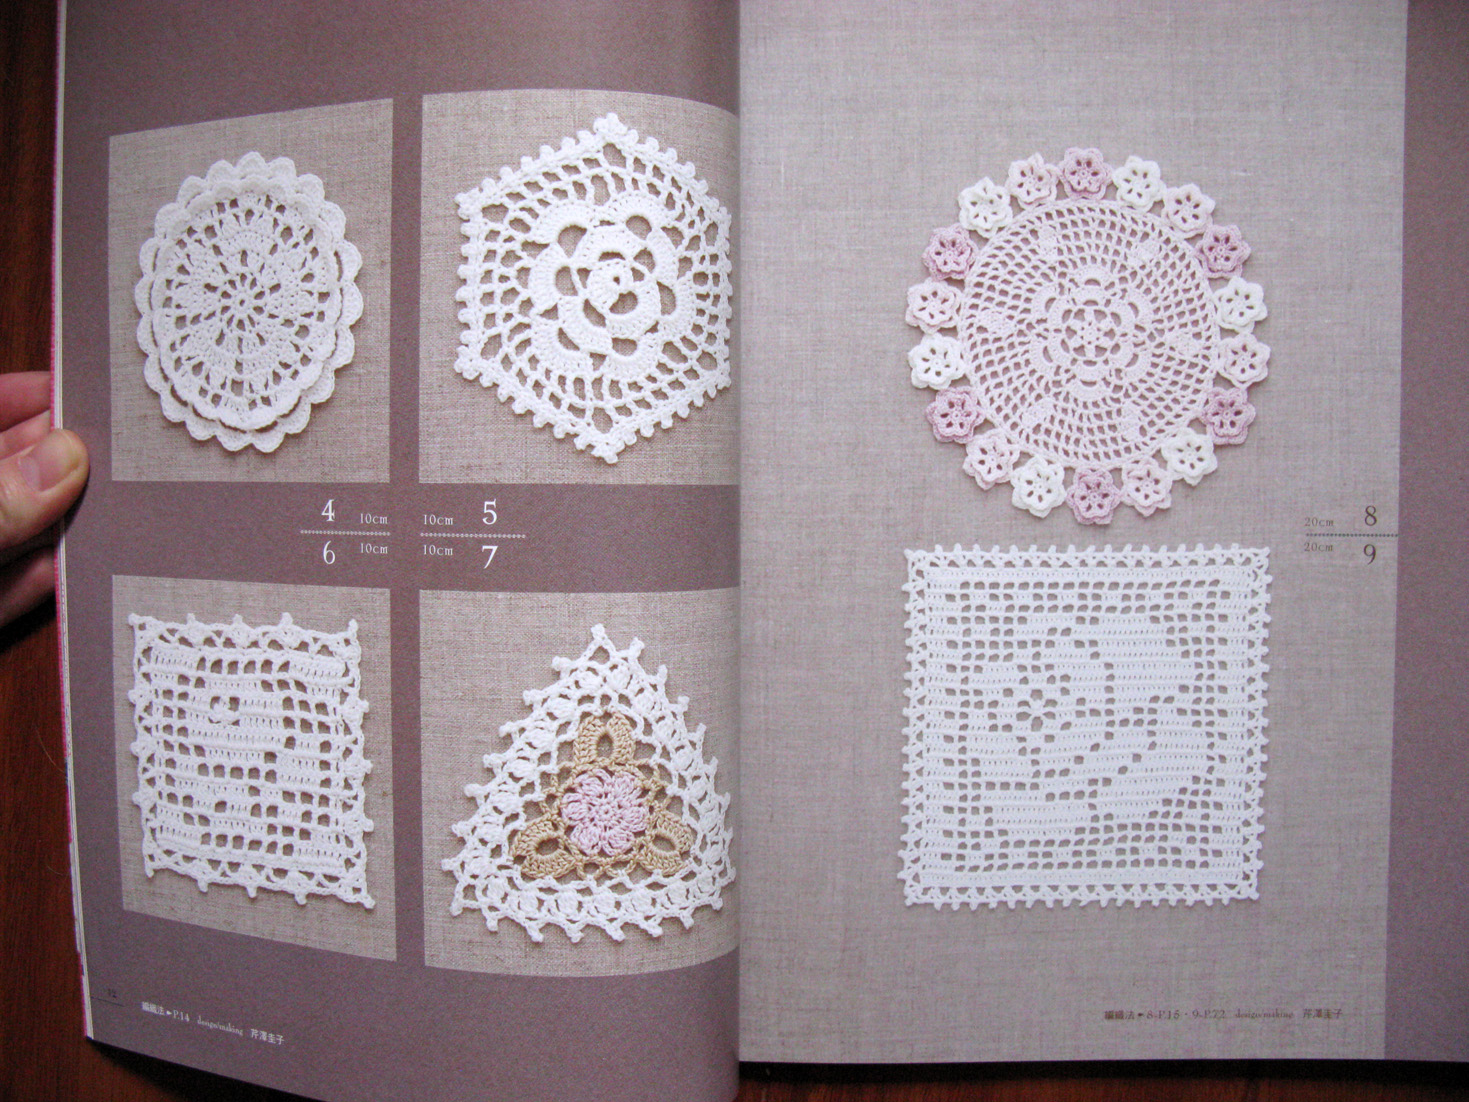 ... .com: Crochet Rose Pattern 100 Japanese Crochet Patterns Book